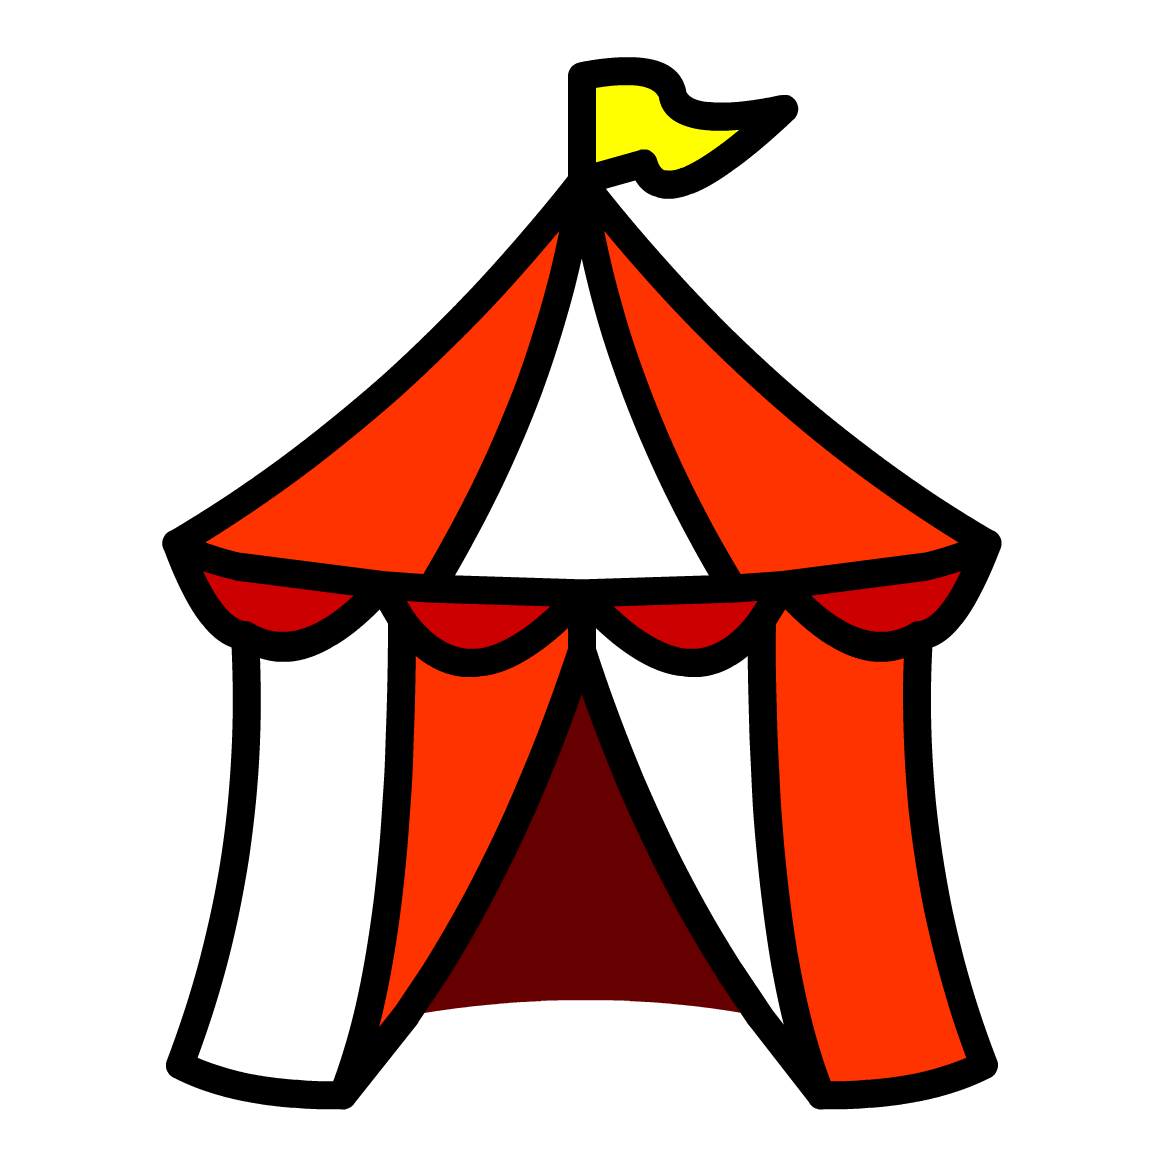 Clipart carnival tent graphic transparent download Free Circus Tent Pics, Download Free Clip Art, Free Clip Art on ... graphic transparent download